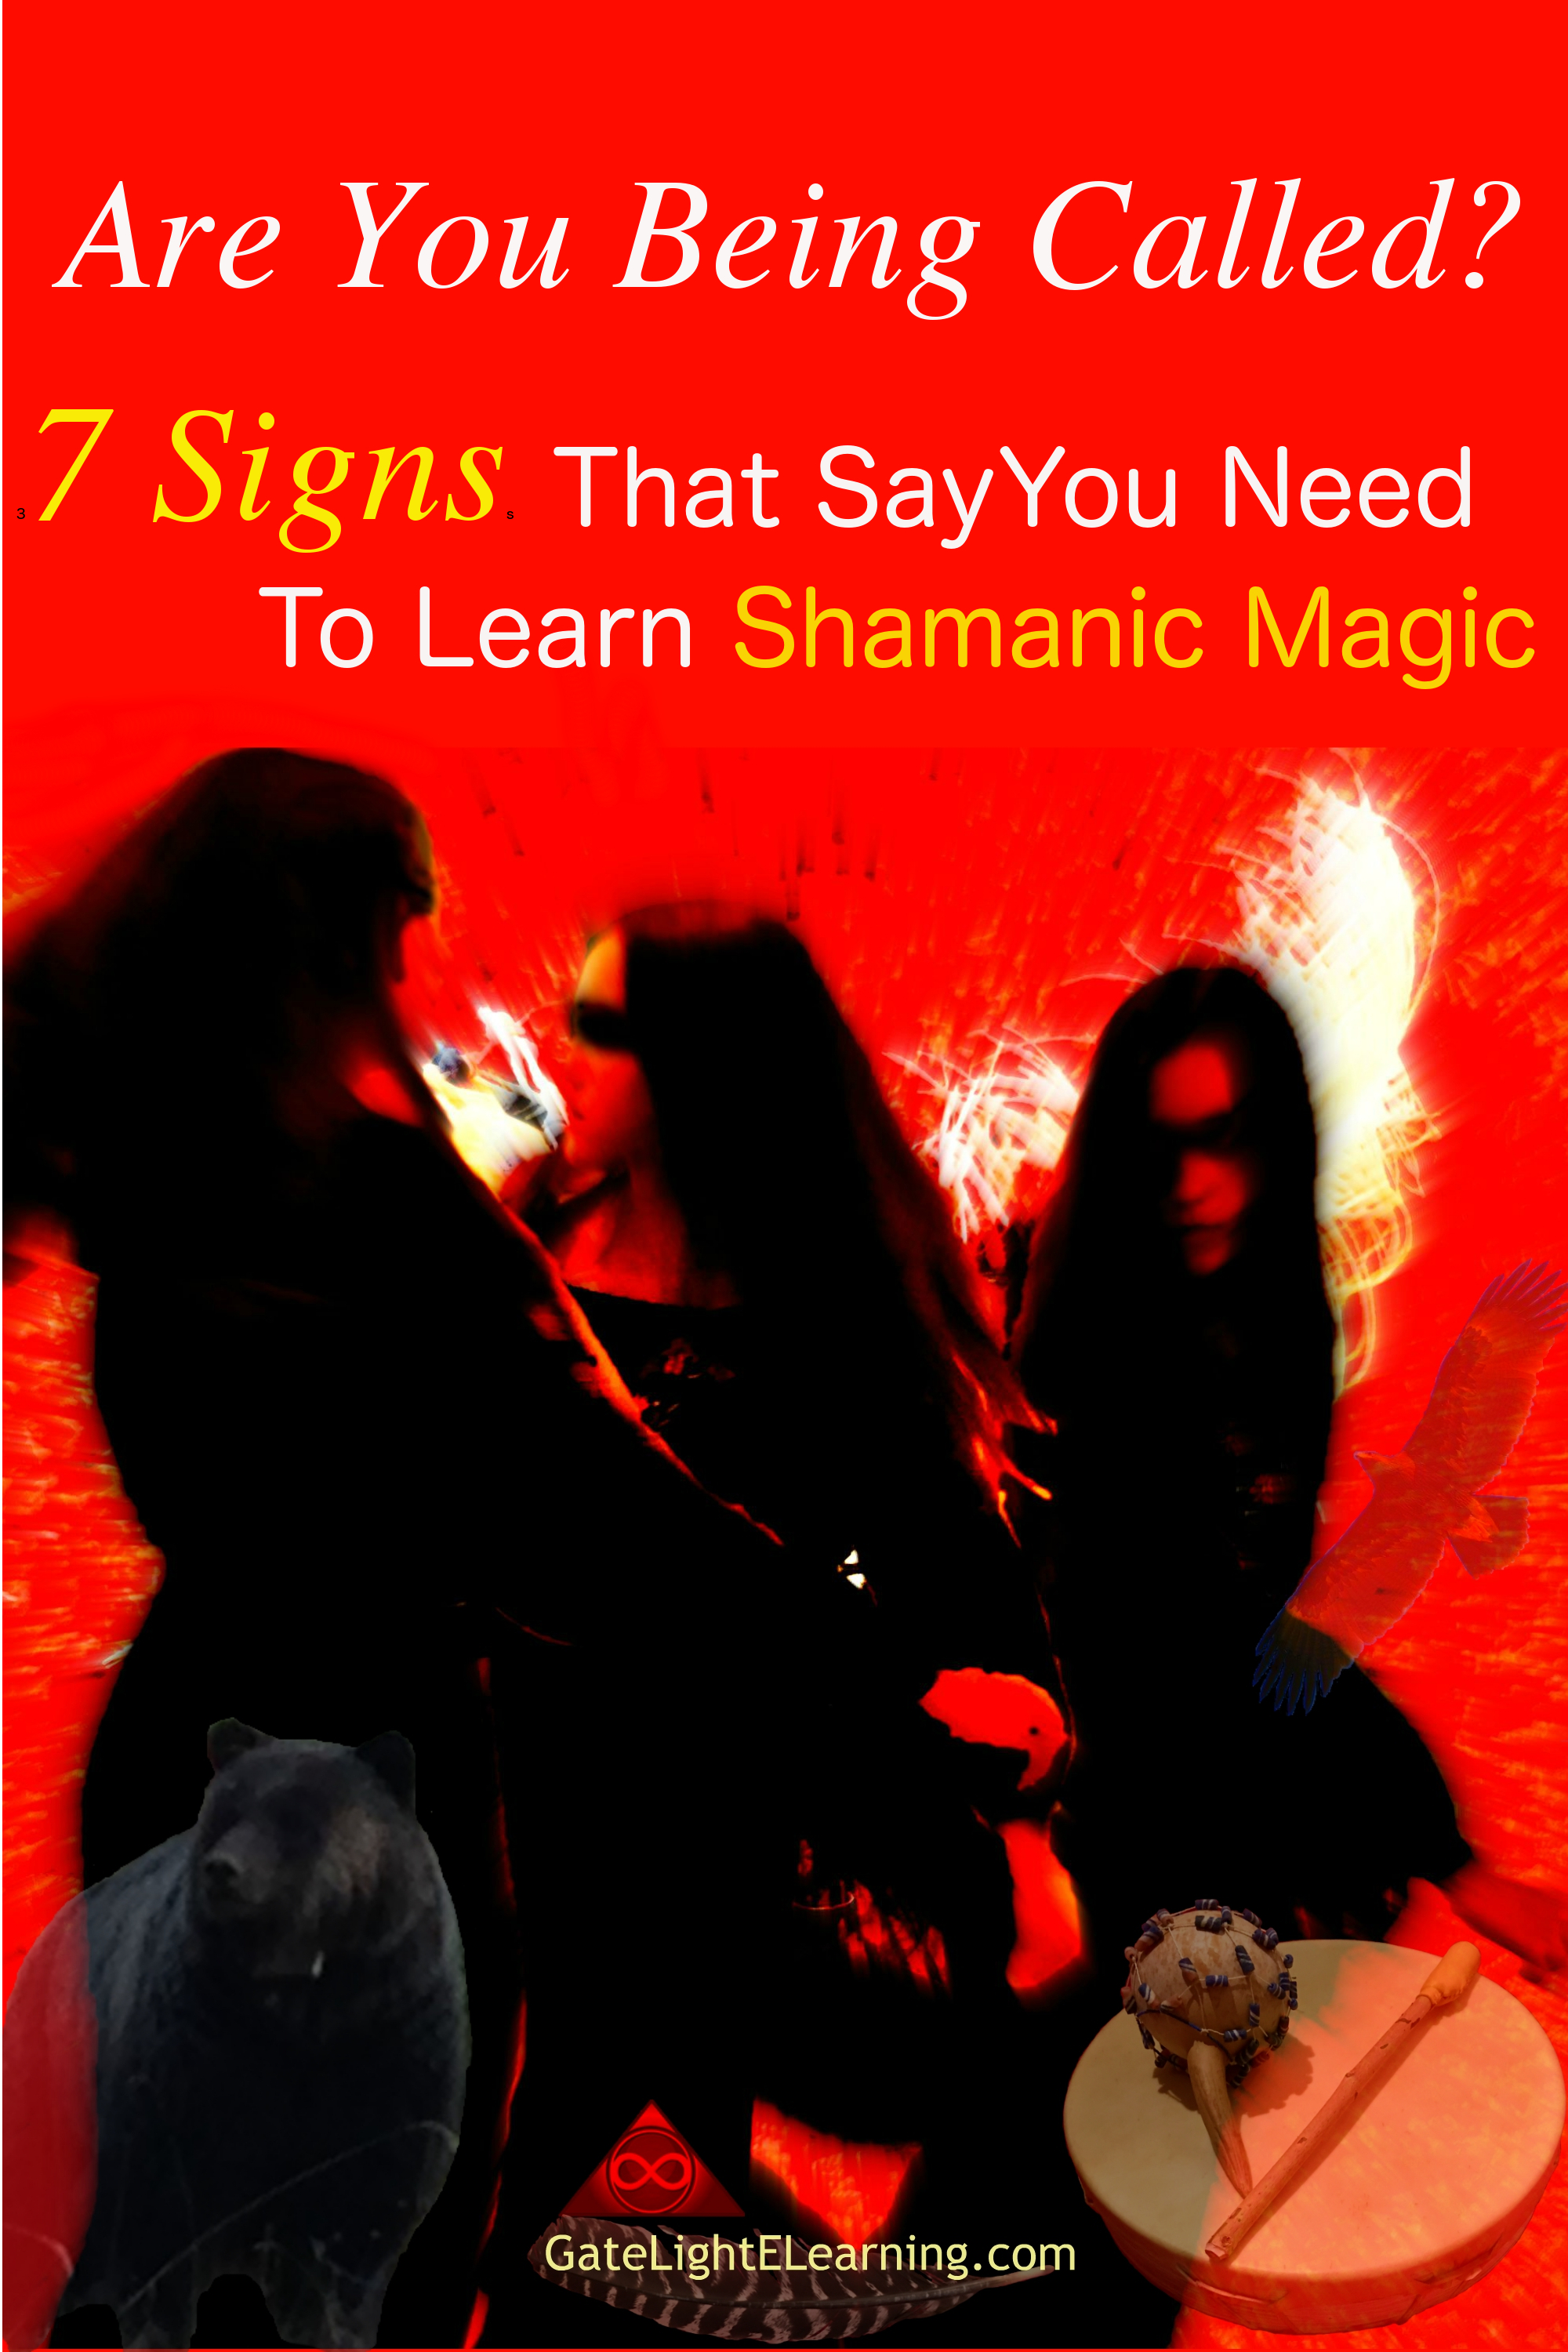 7 signs that say you need to learn shamanic magic